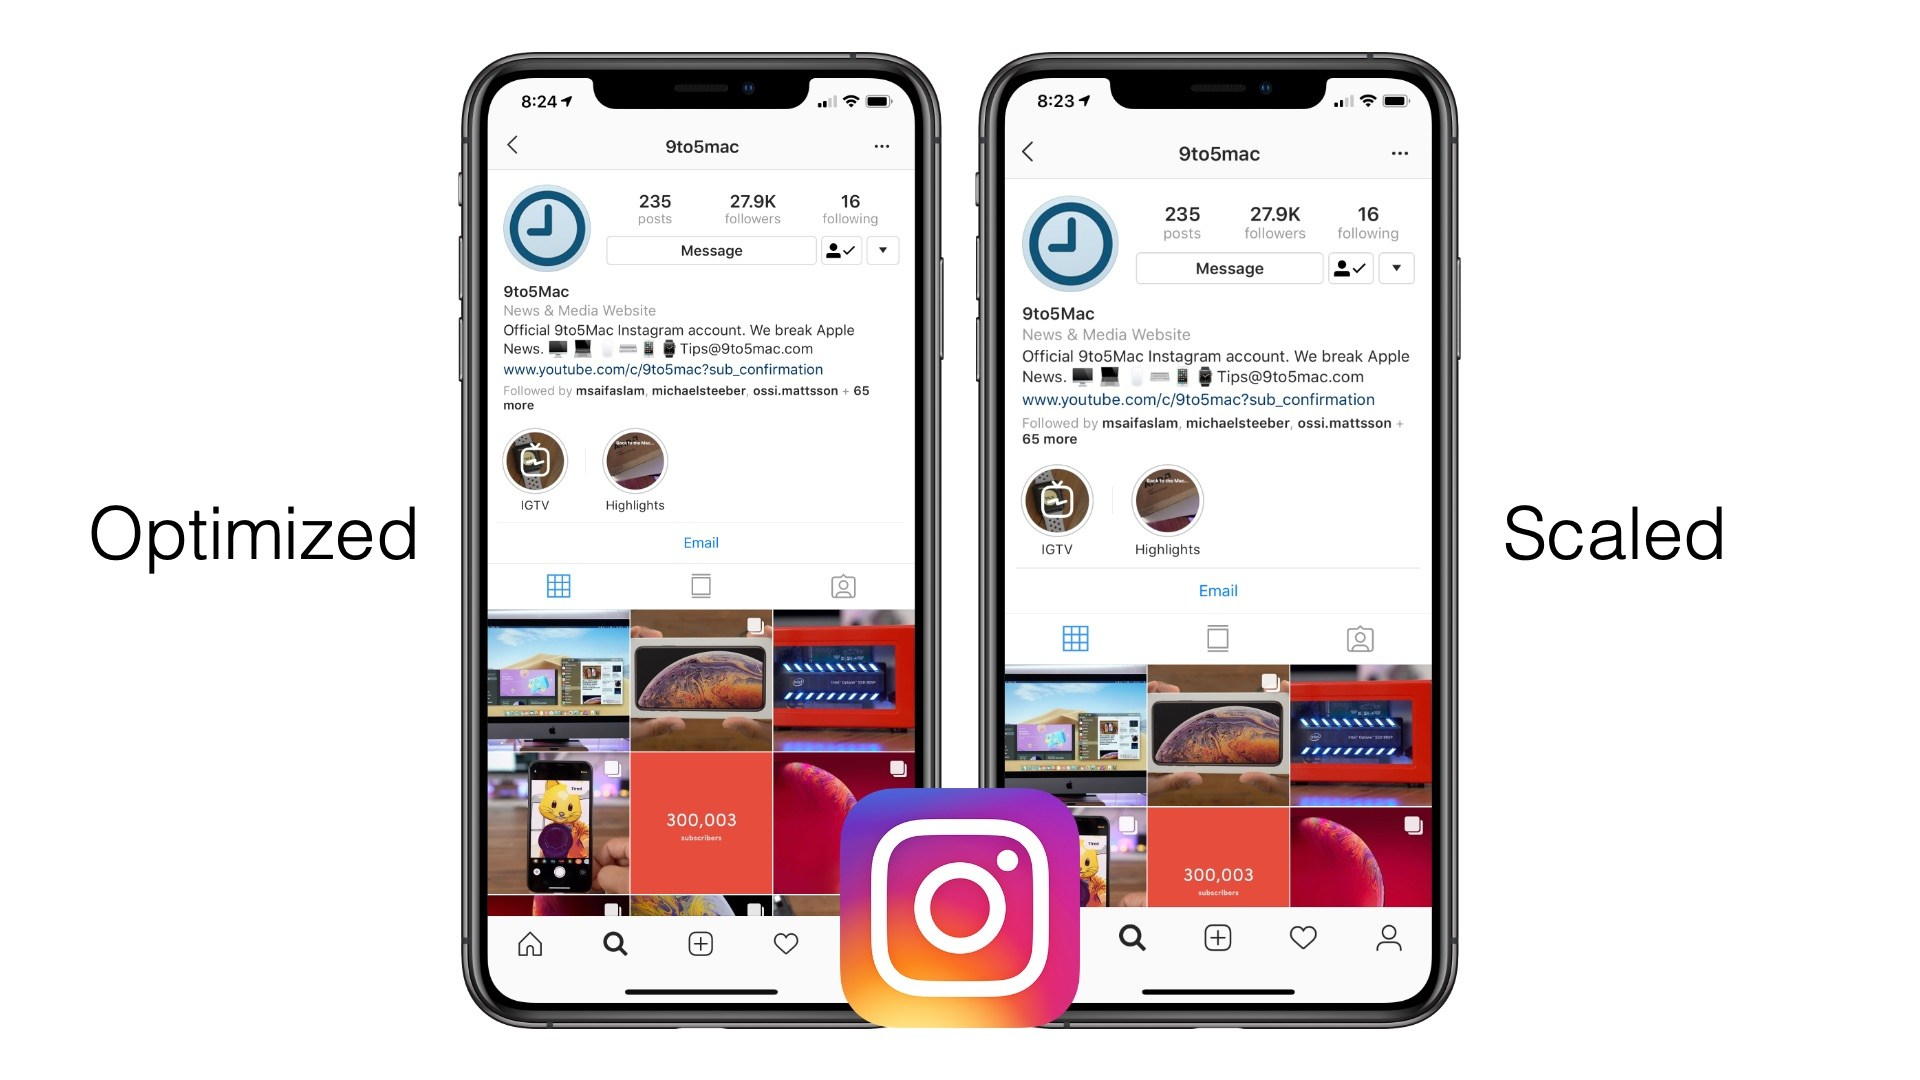 Instagram for iOS - optimized vs. scaled comparison